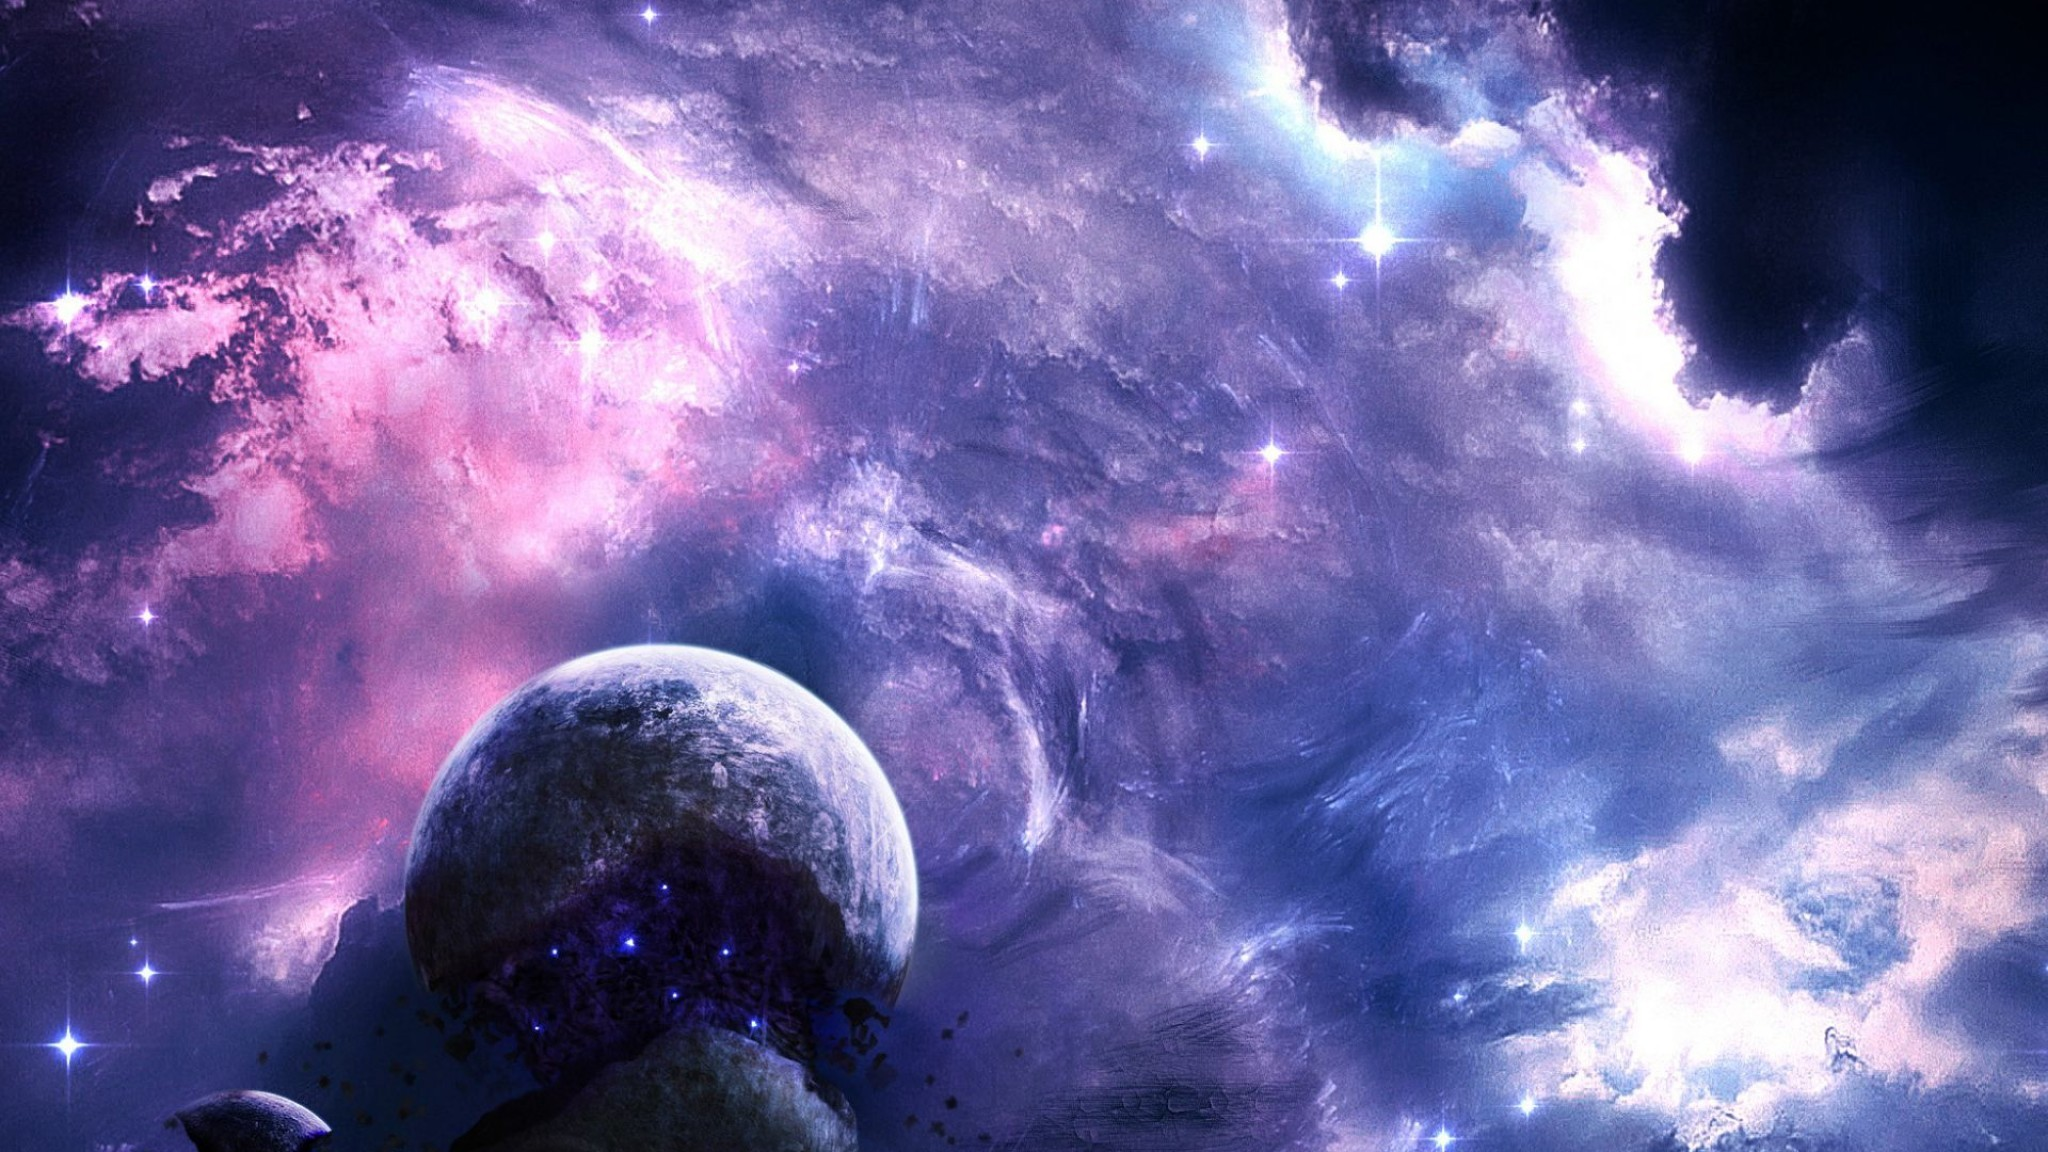 Wallpaper Galaxy Must be completed in 1 day